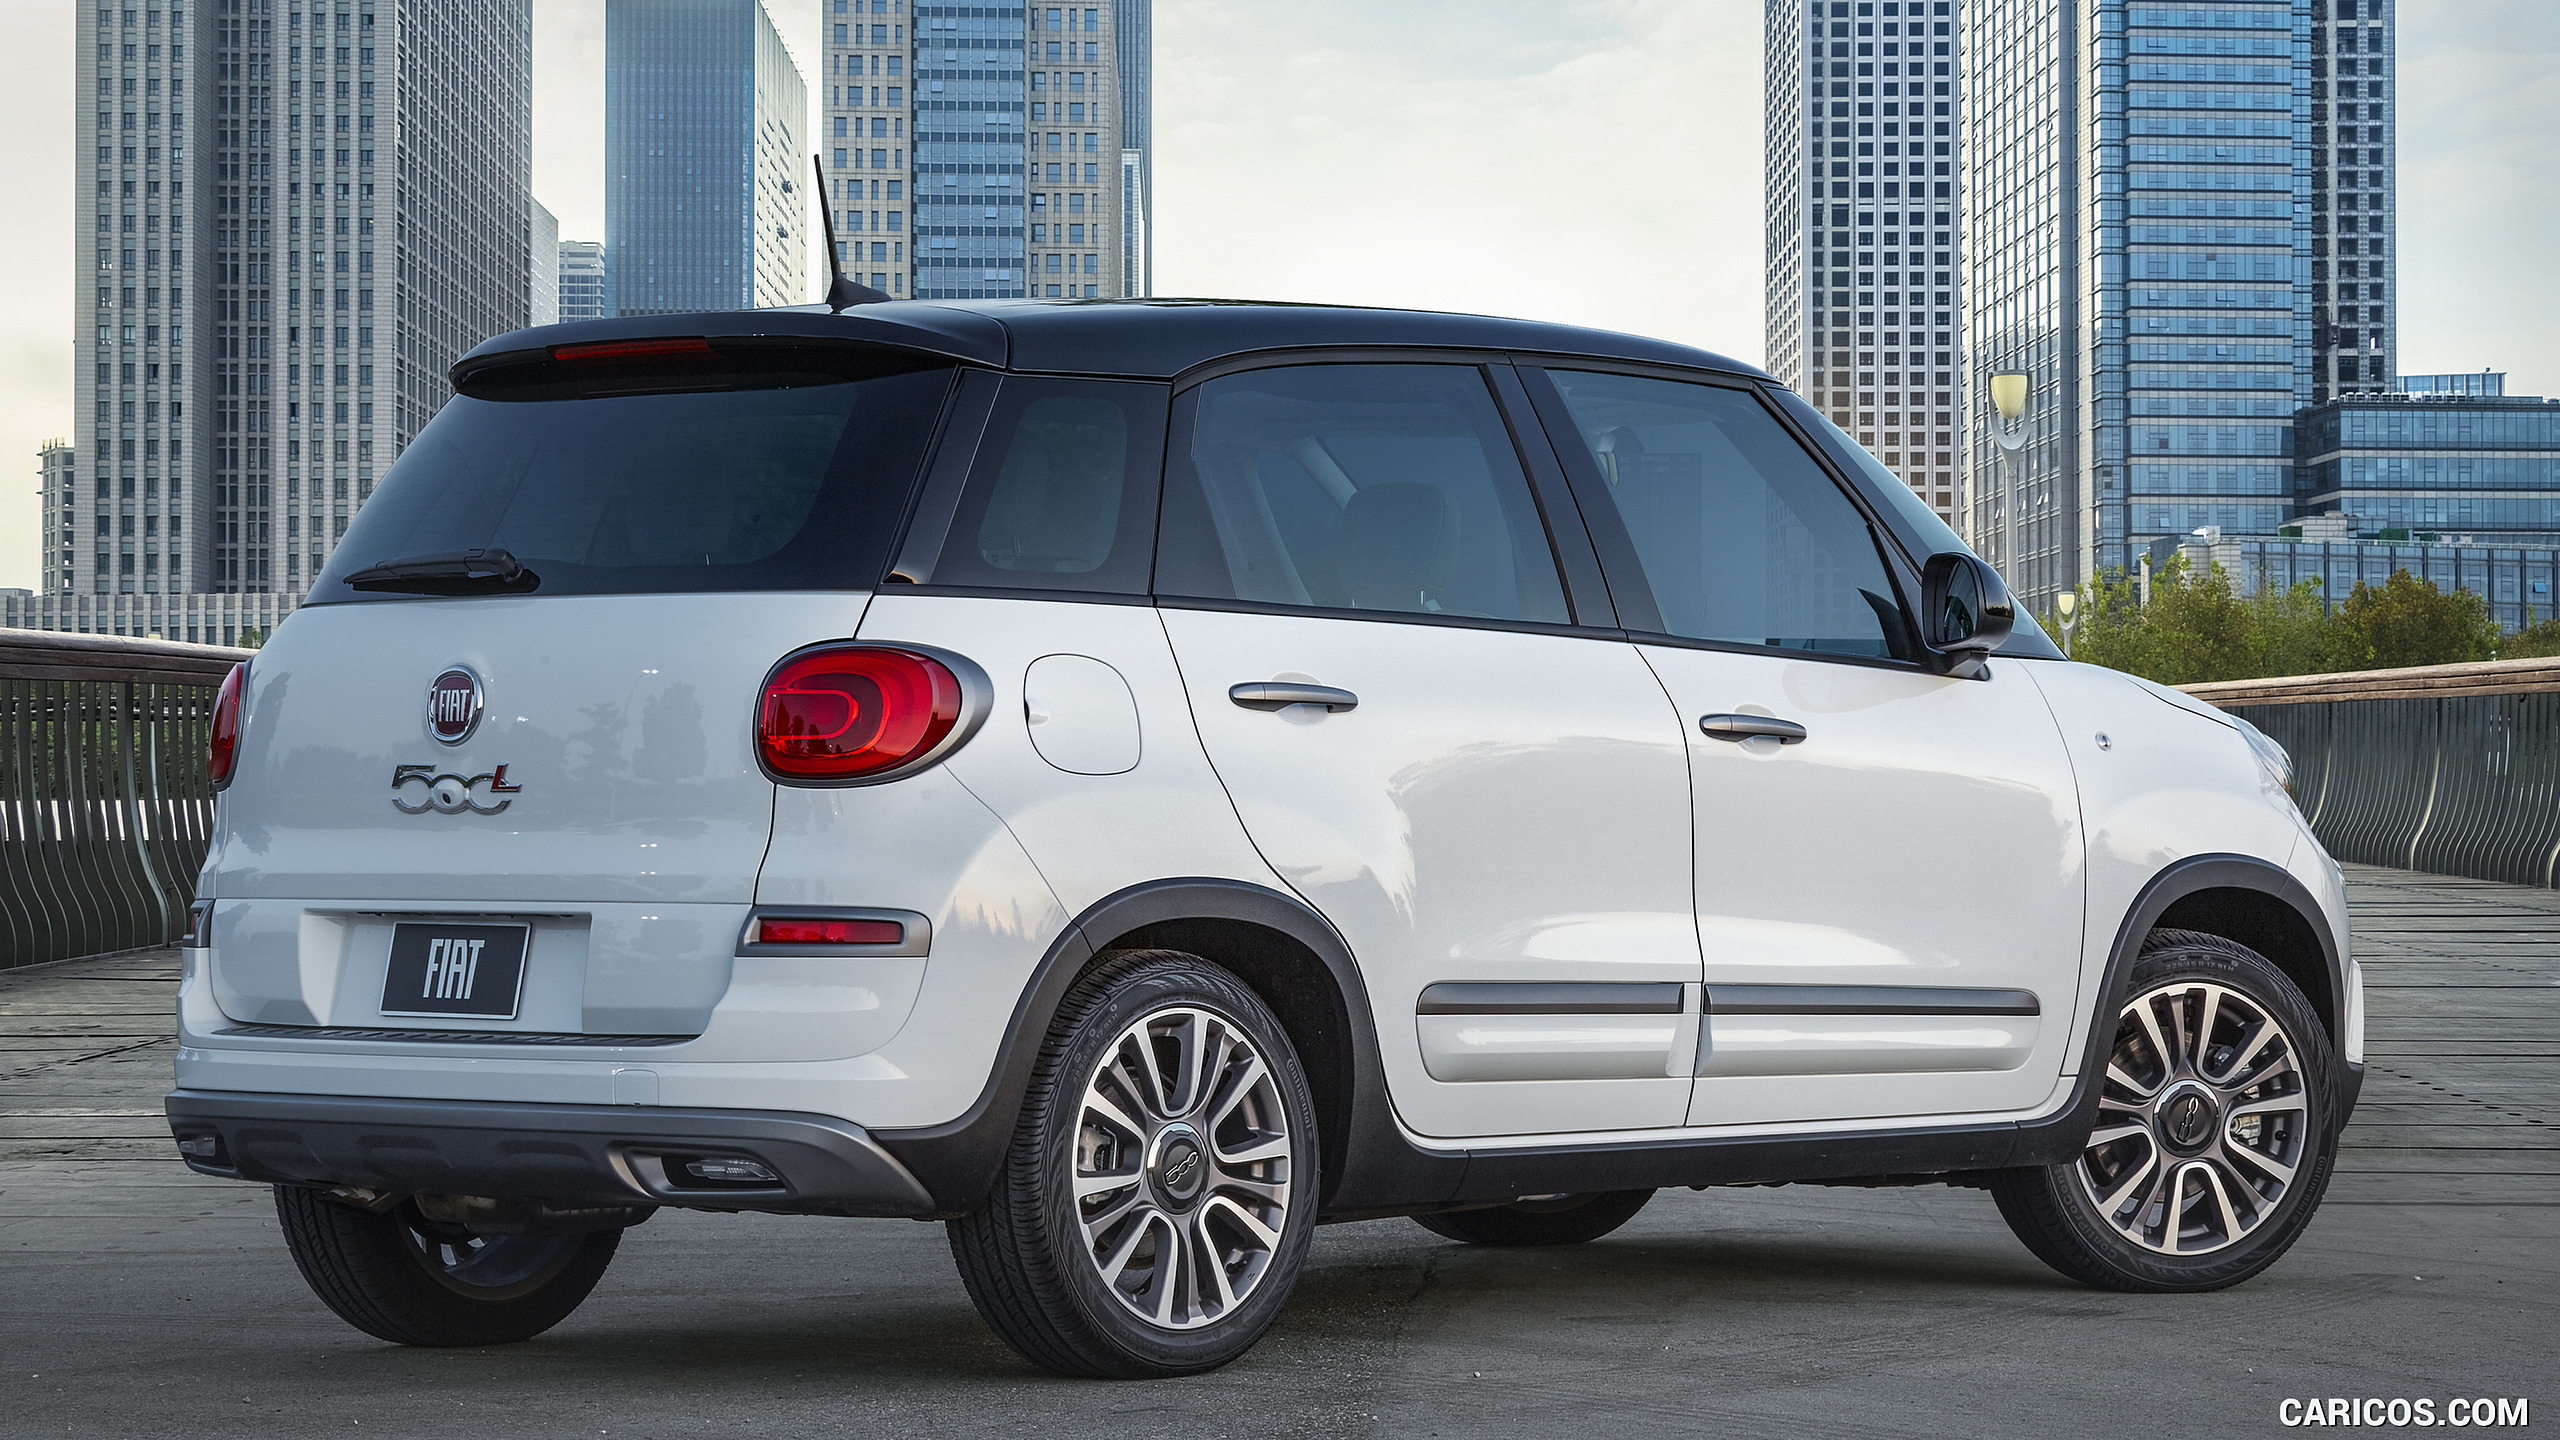 2019 Fiat 500L Trekking   Rear Three Quarter HD Wallpaper 17 2560x1440